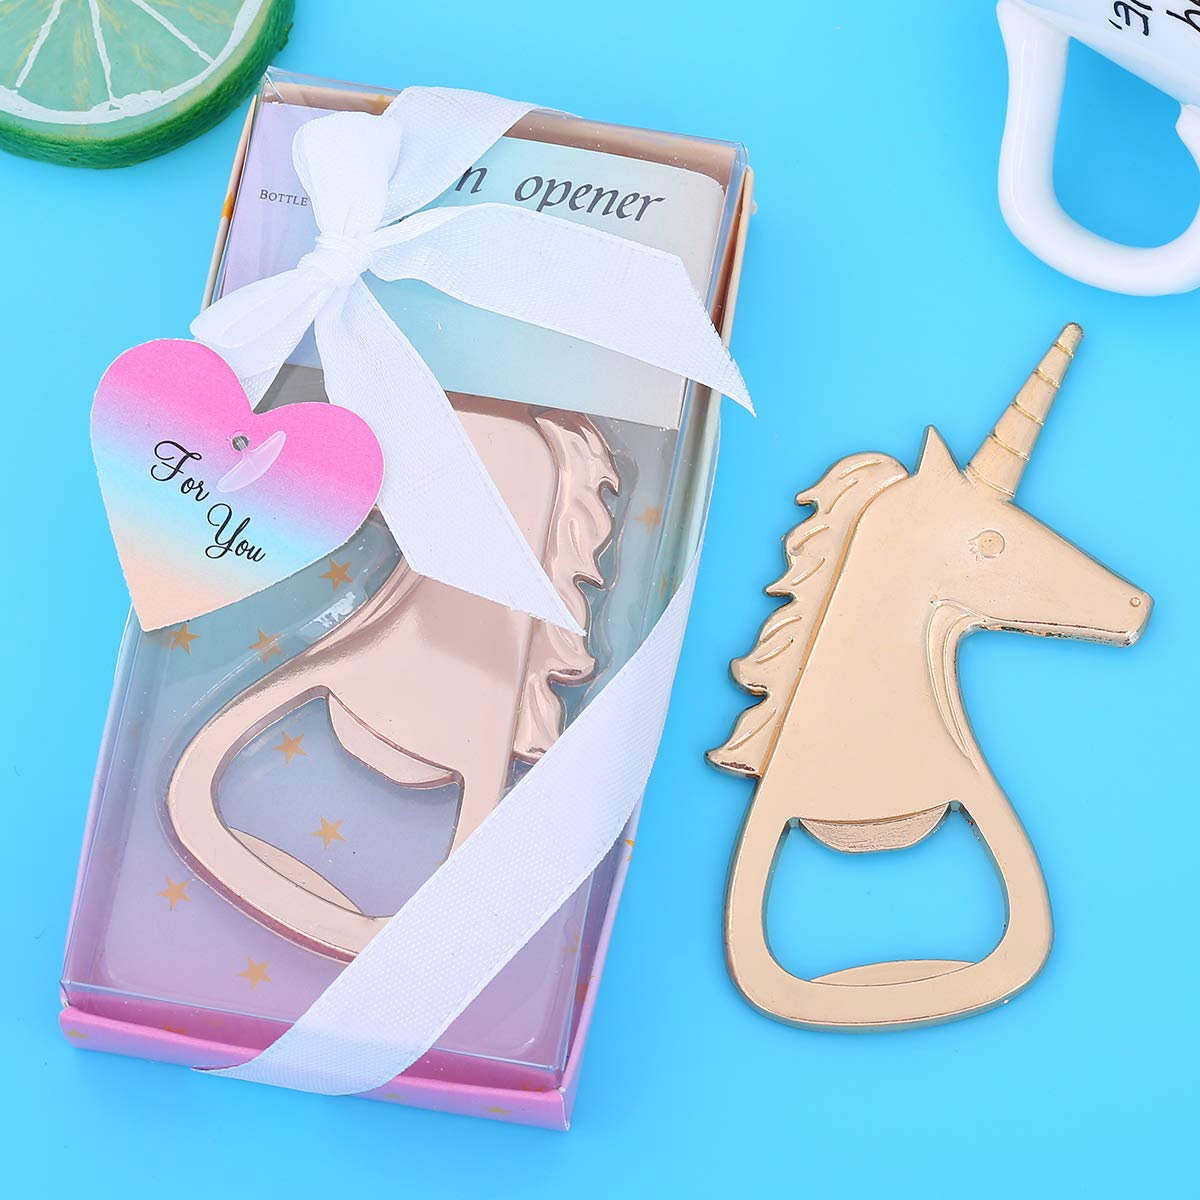 24 pcs Baby Shower Return Gifts for Guest Supplies Baby Shaped Bottle Opener Wedding Favor with Exquisite Packaging Party Souvenirs Gift Decorations by WeddParty Baby White 24PCS